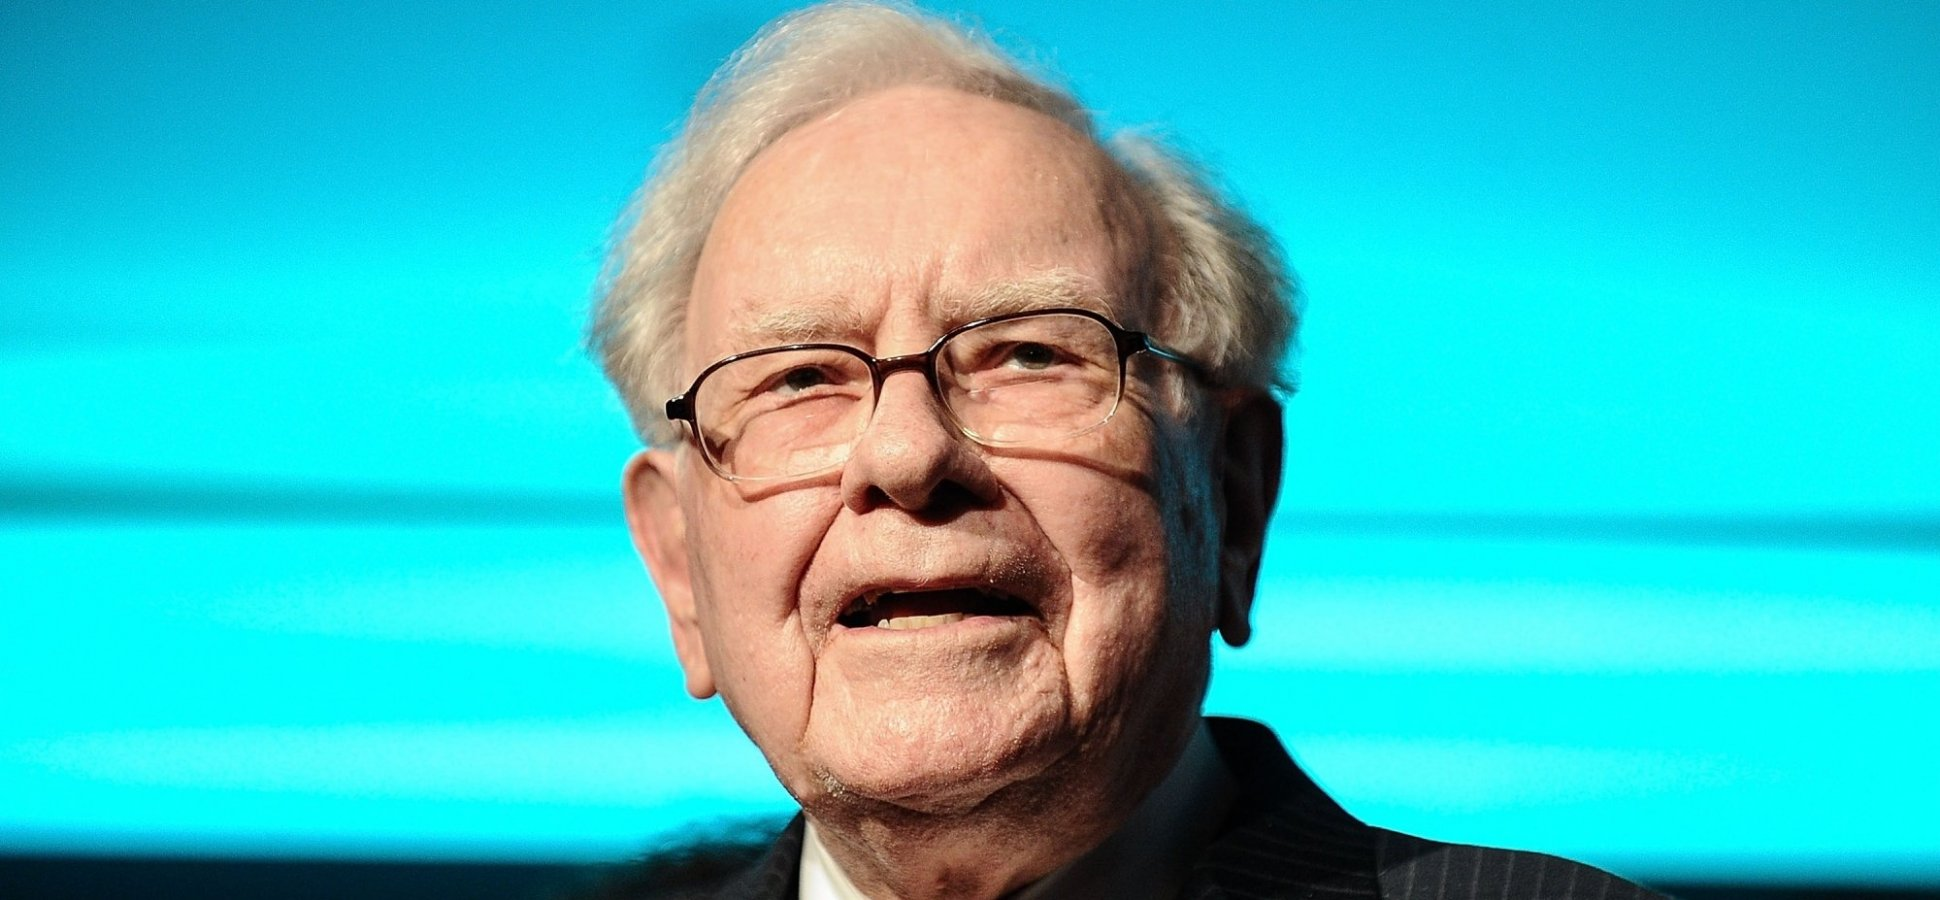 Warren Buffett Teaches This Powerful Life Lesson With a 15-Minute